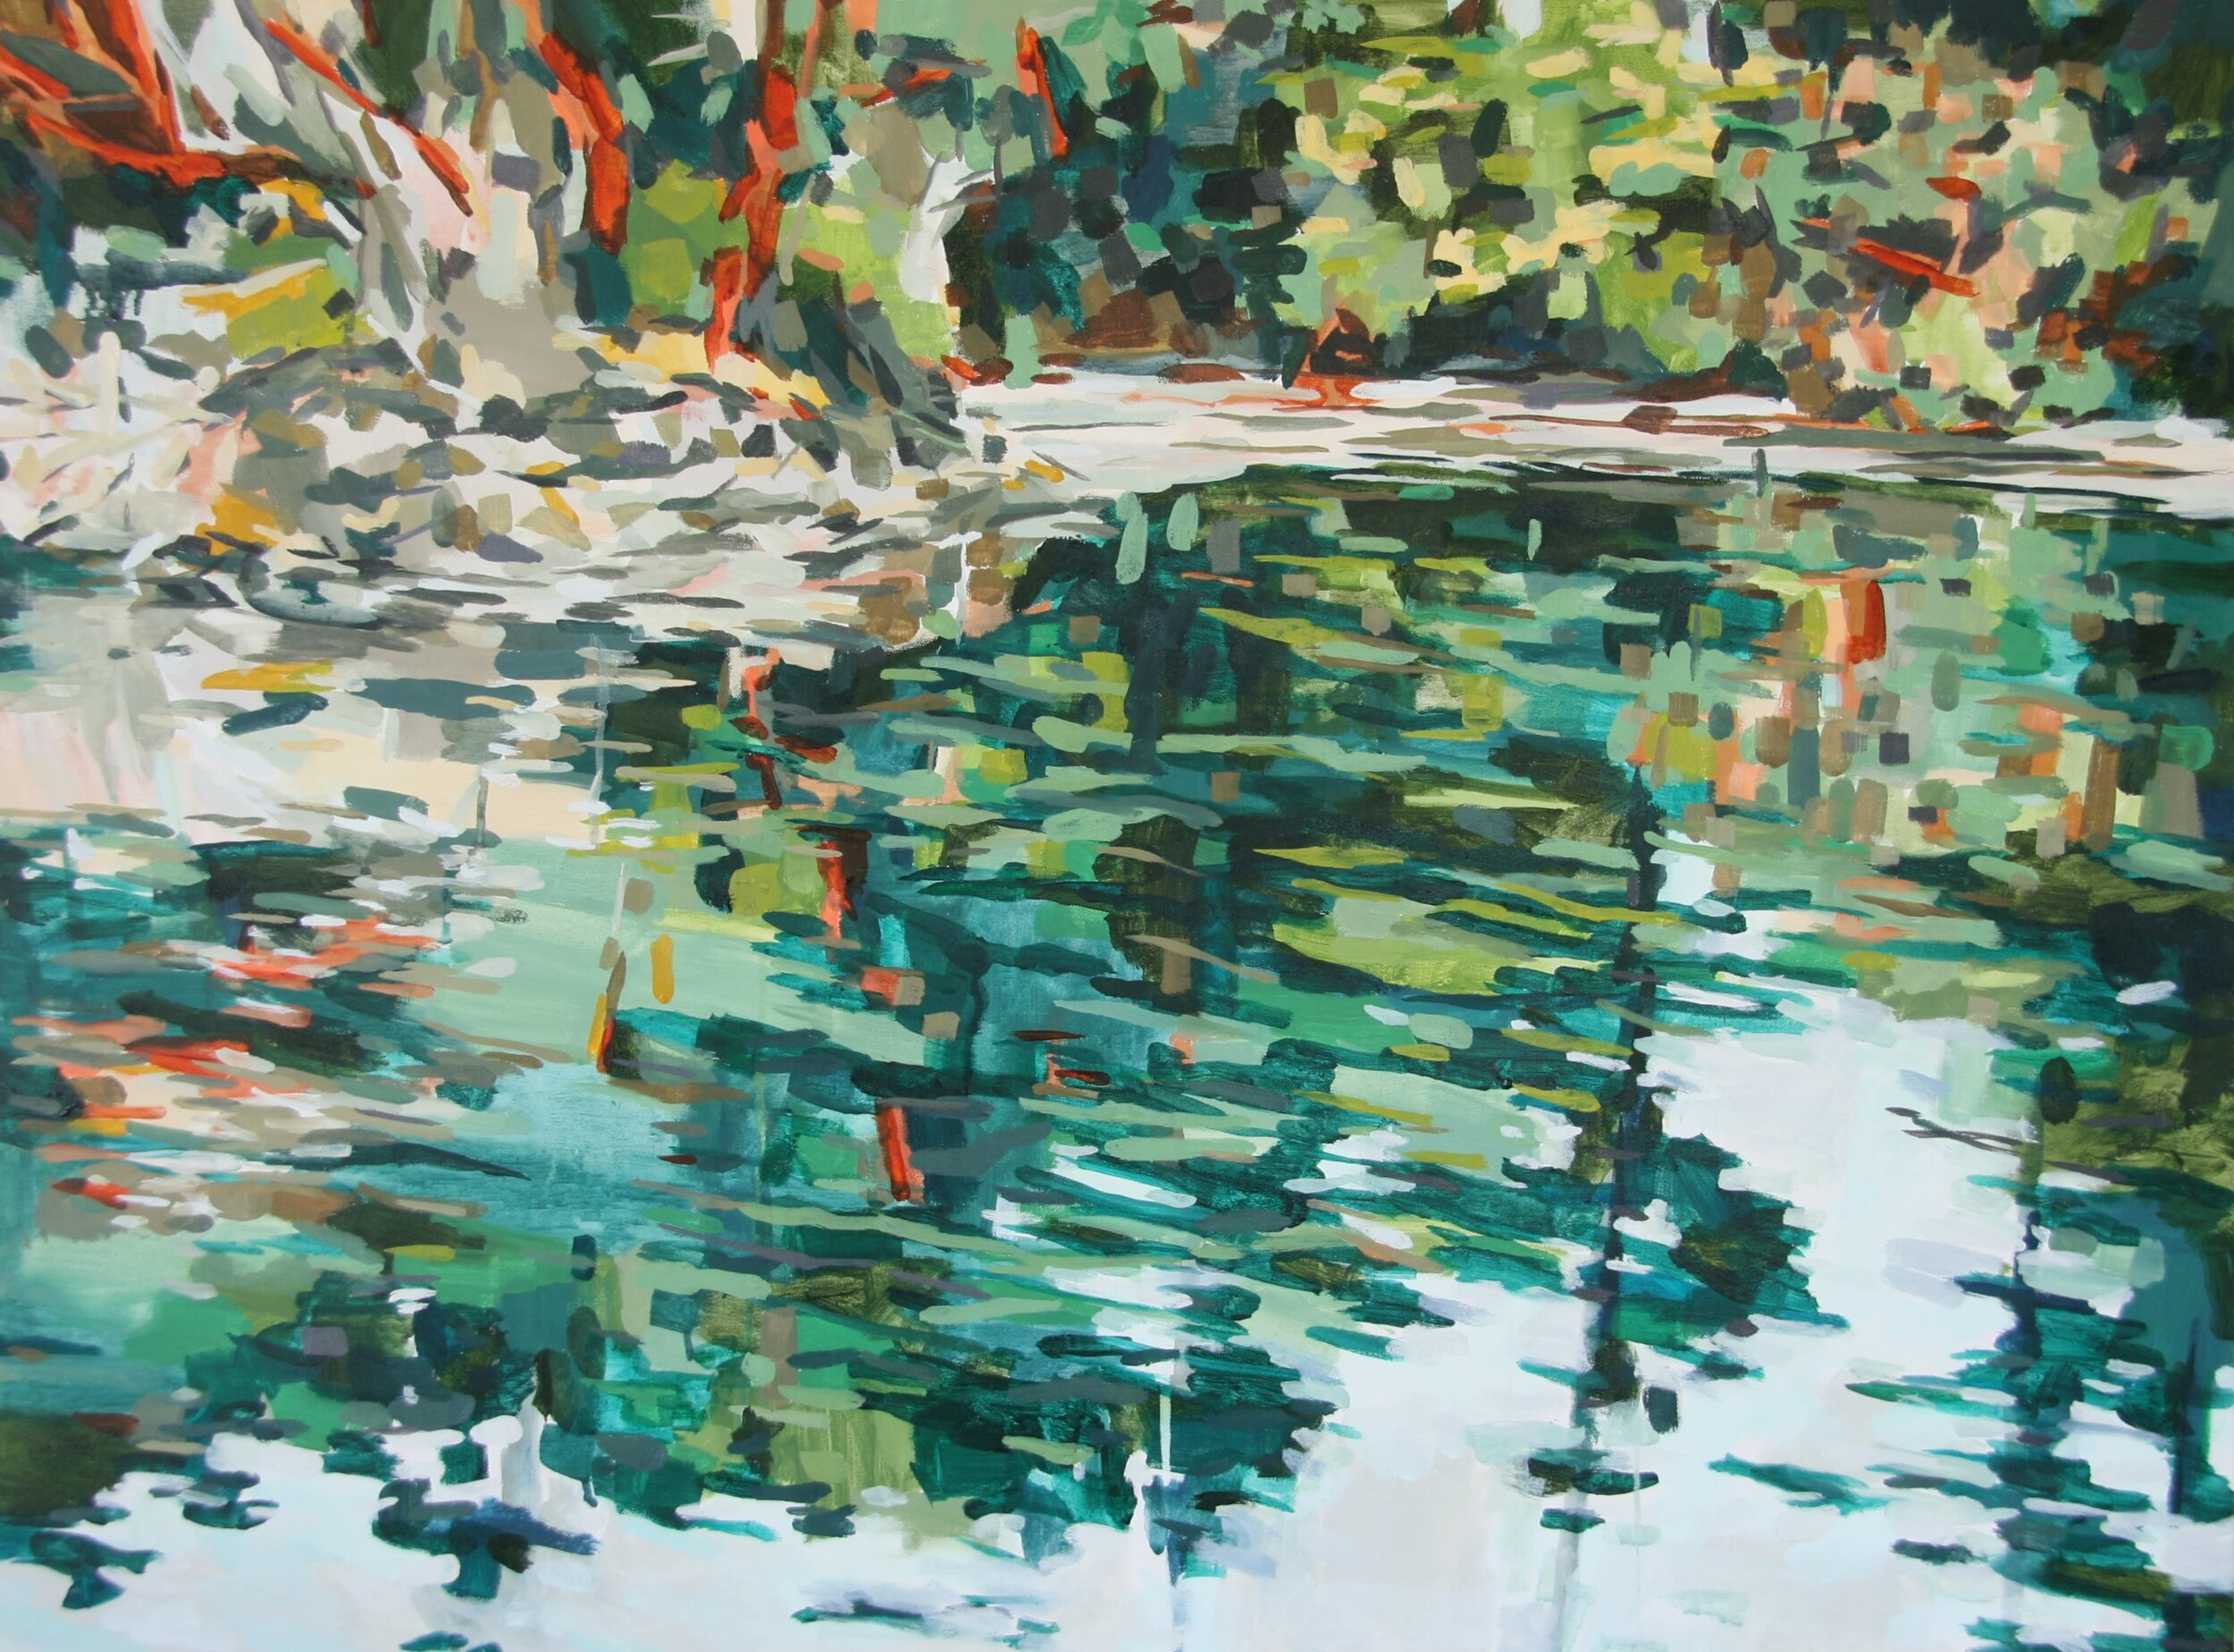 """'Eastsound'  2014  40"""" x 30""""  water soluble oil on canvas  sold"""